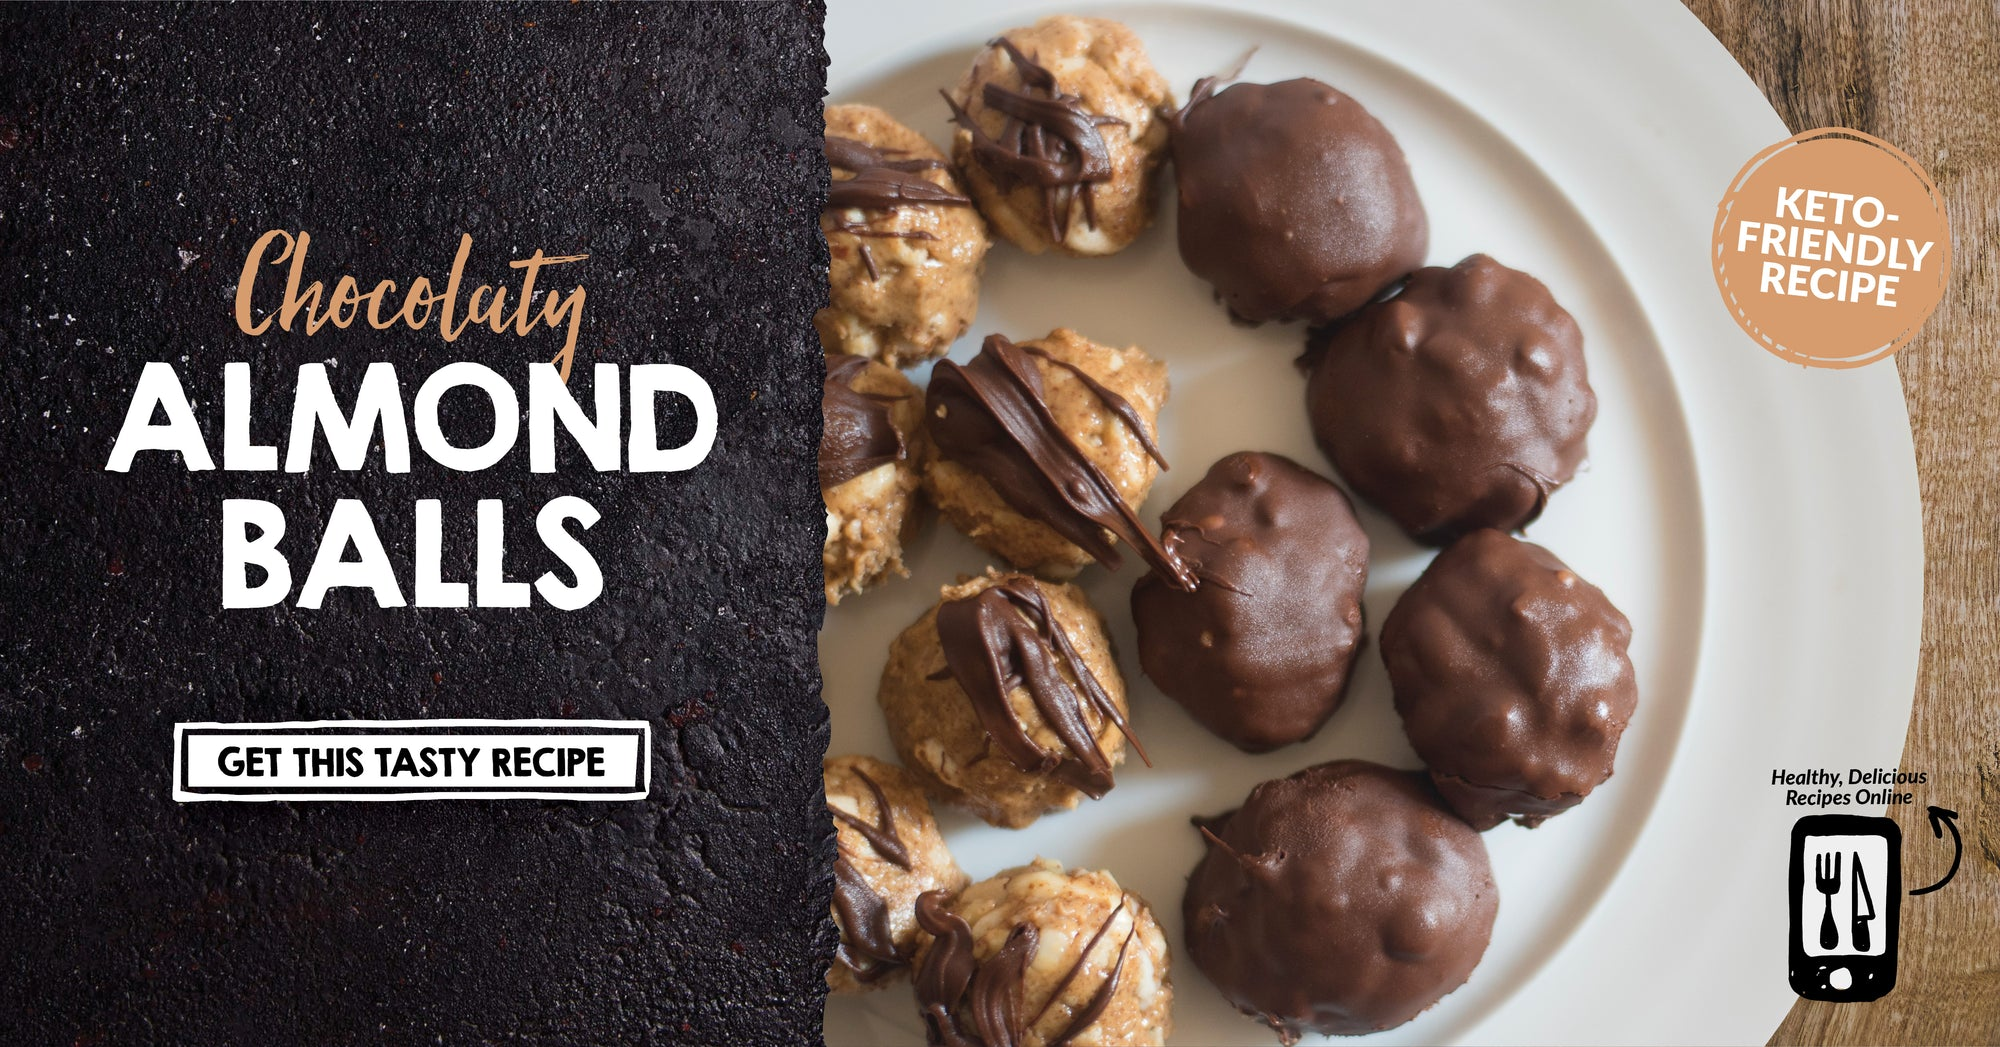 Chocolaty Almond Balls